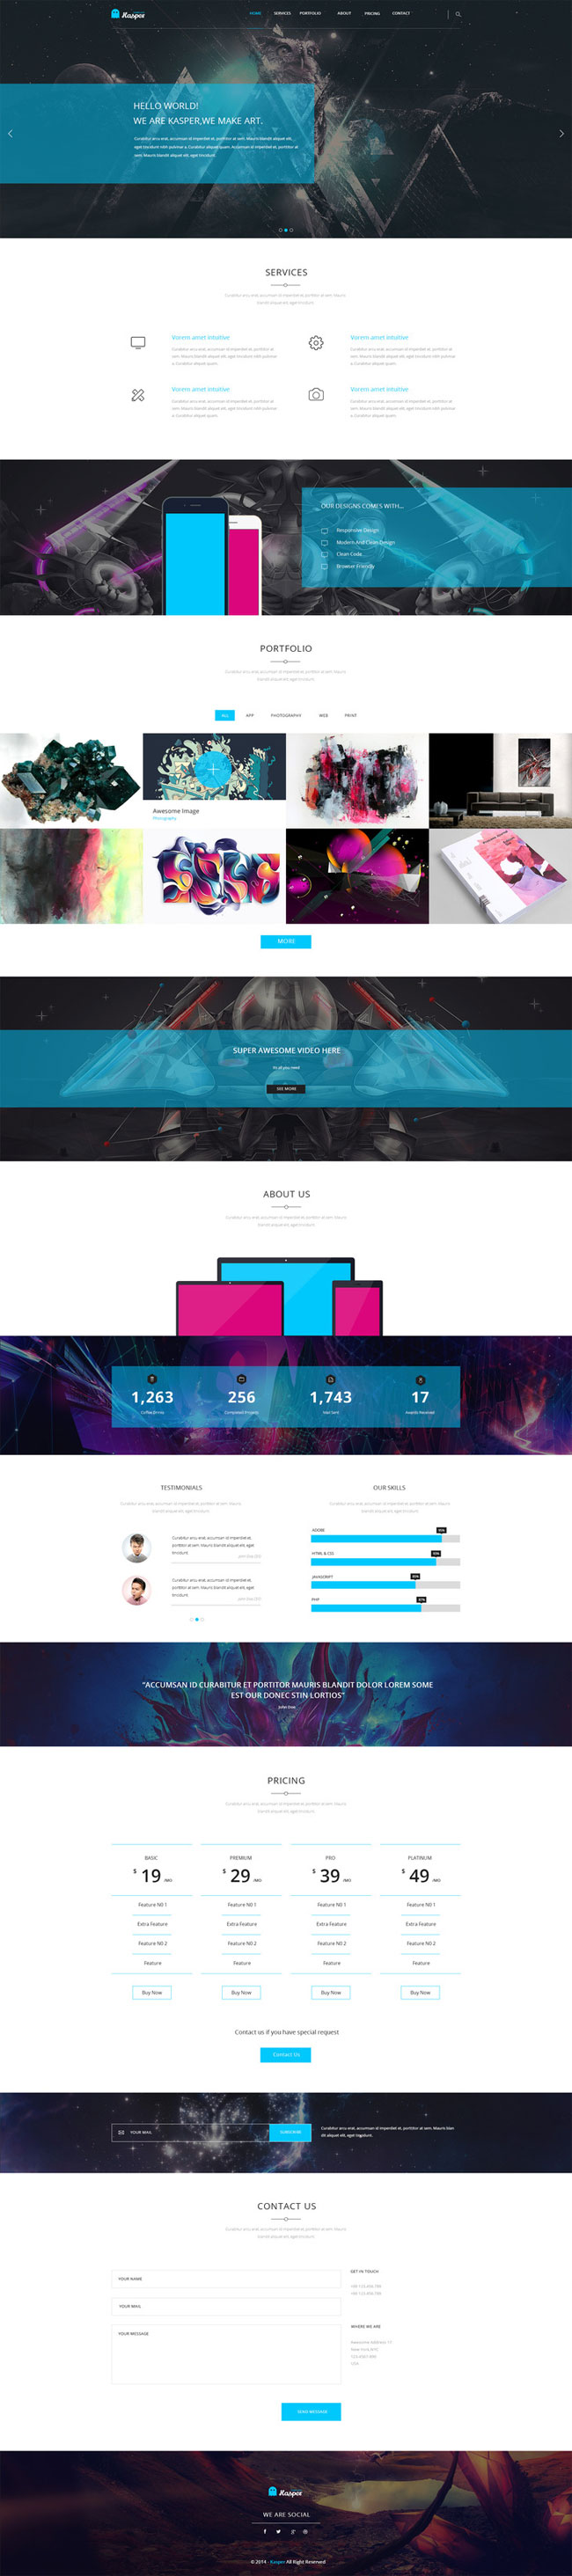 Kasper - Free Business One Page PSD Template